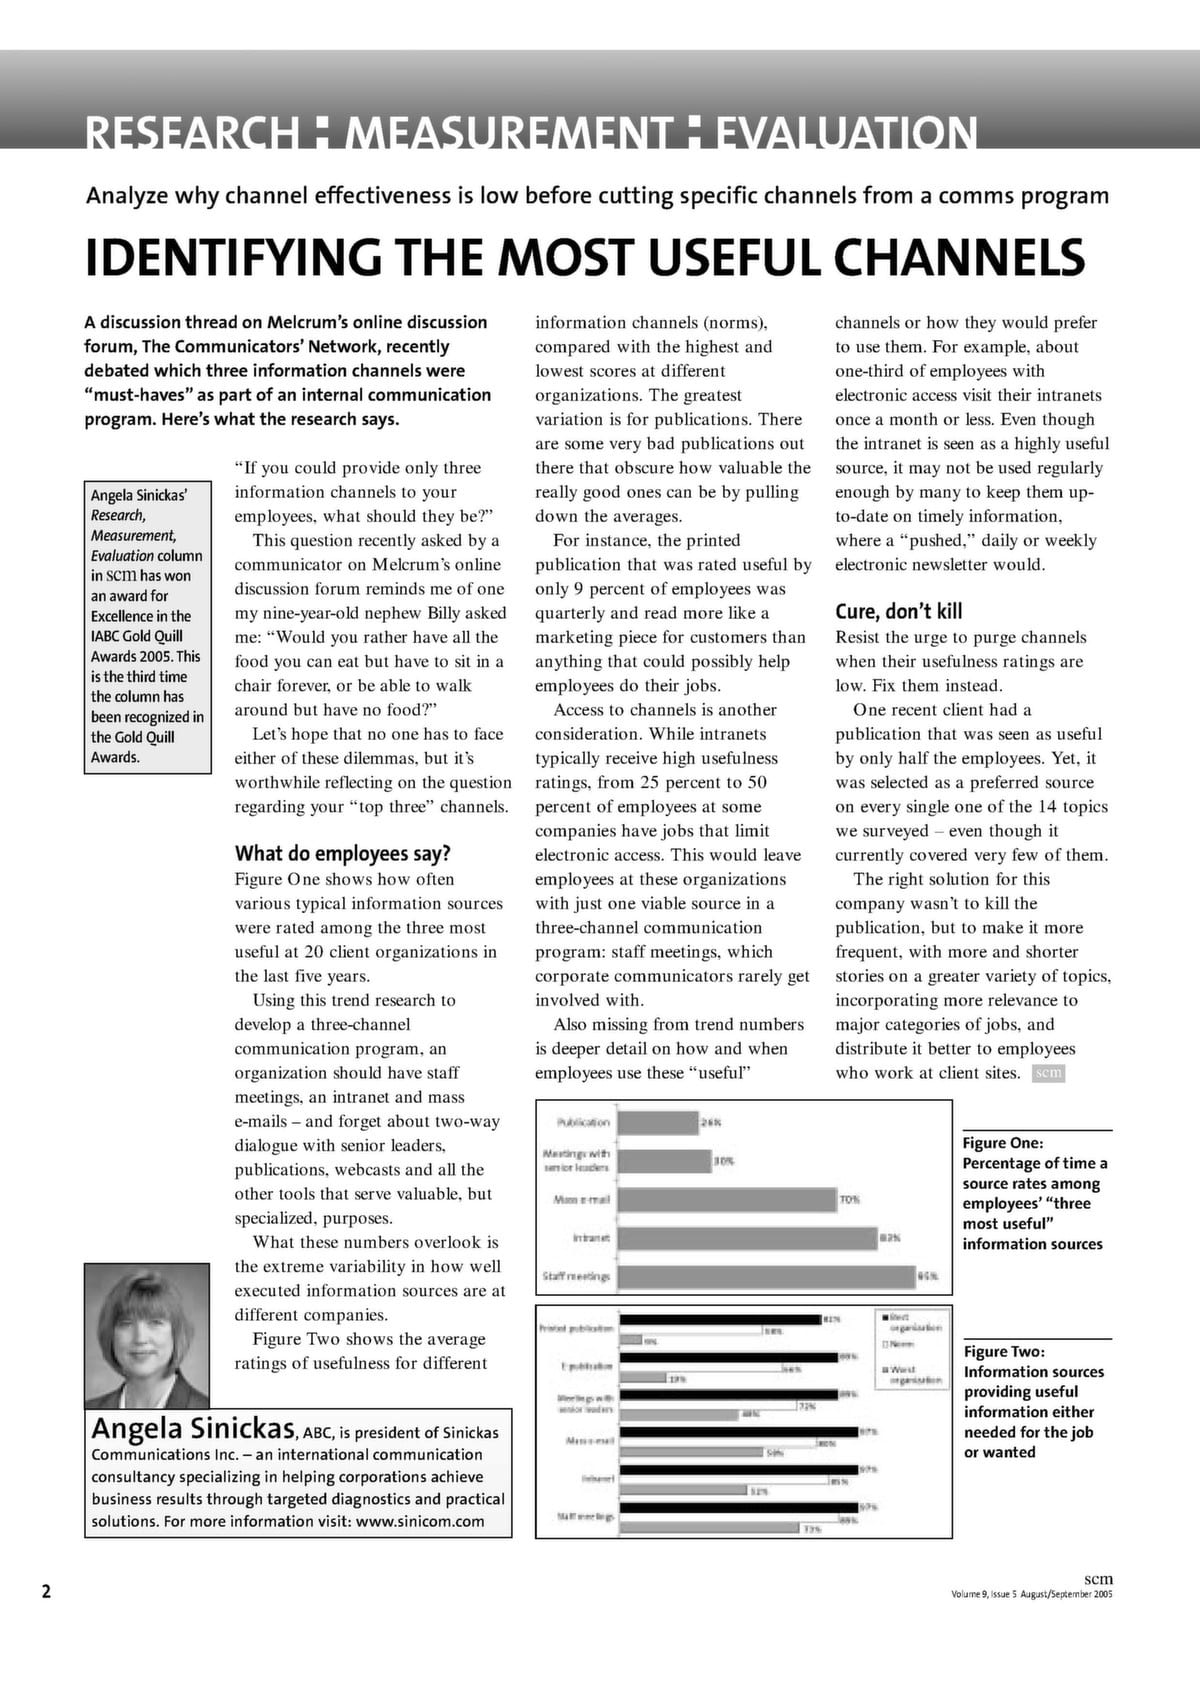 Identifying the most useful channels - Sinickas Communications, Inc